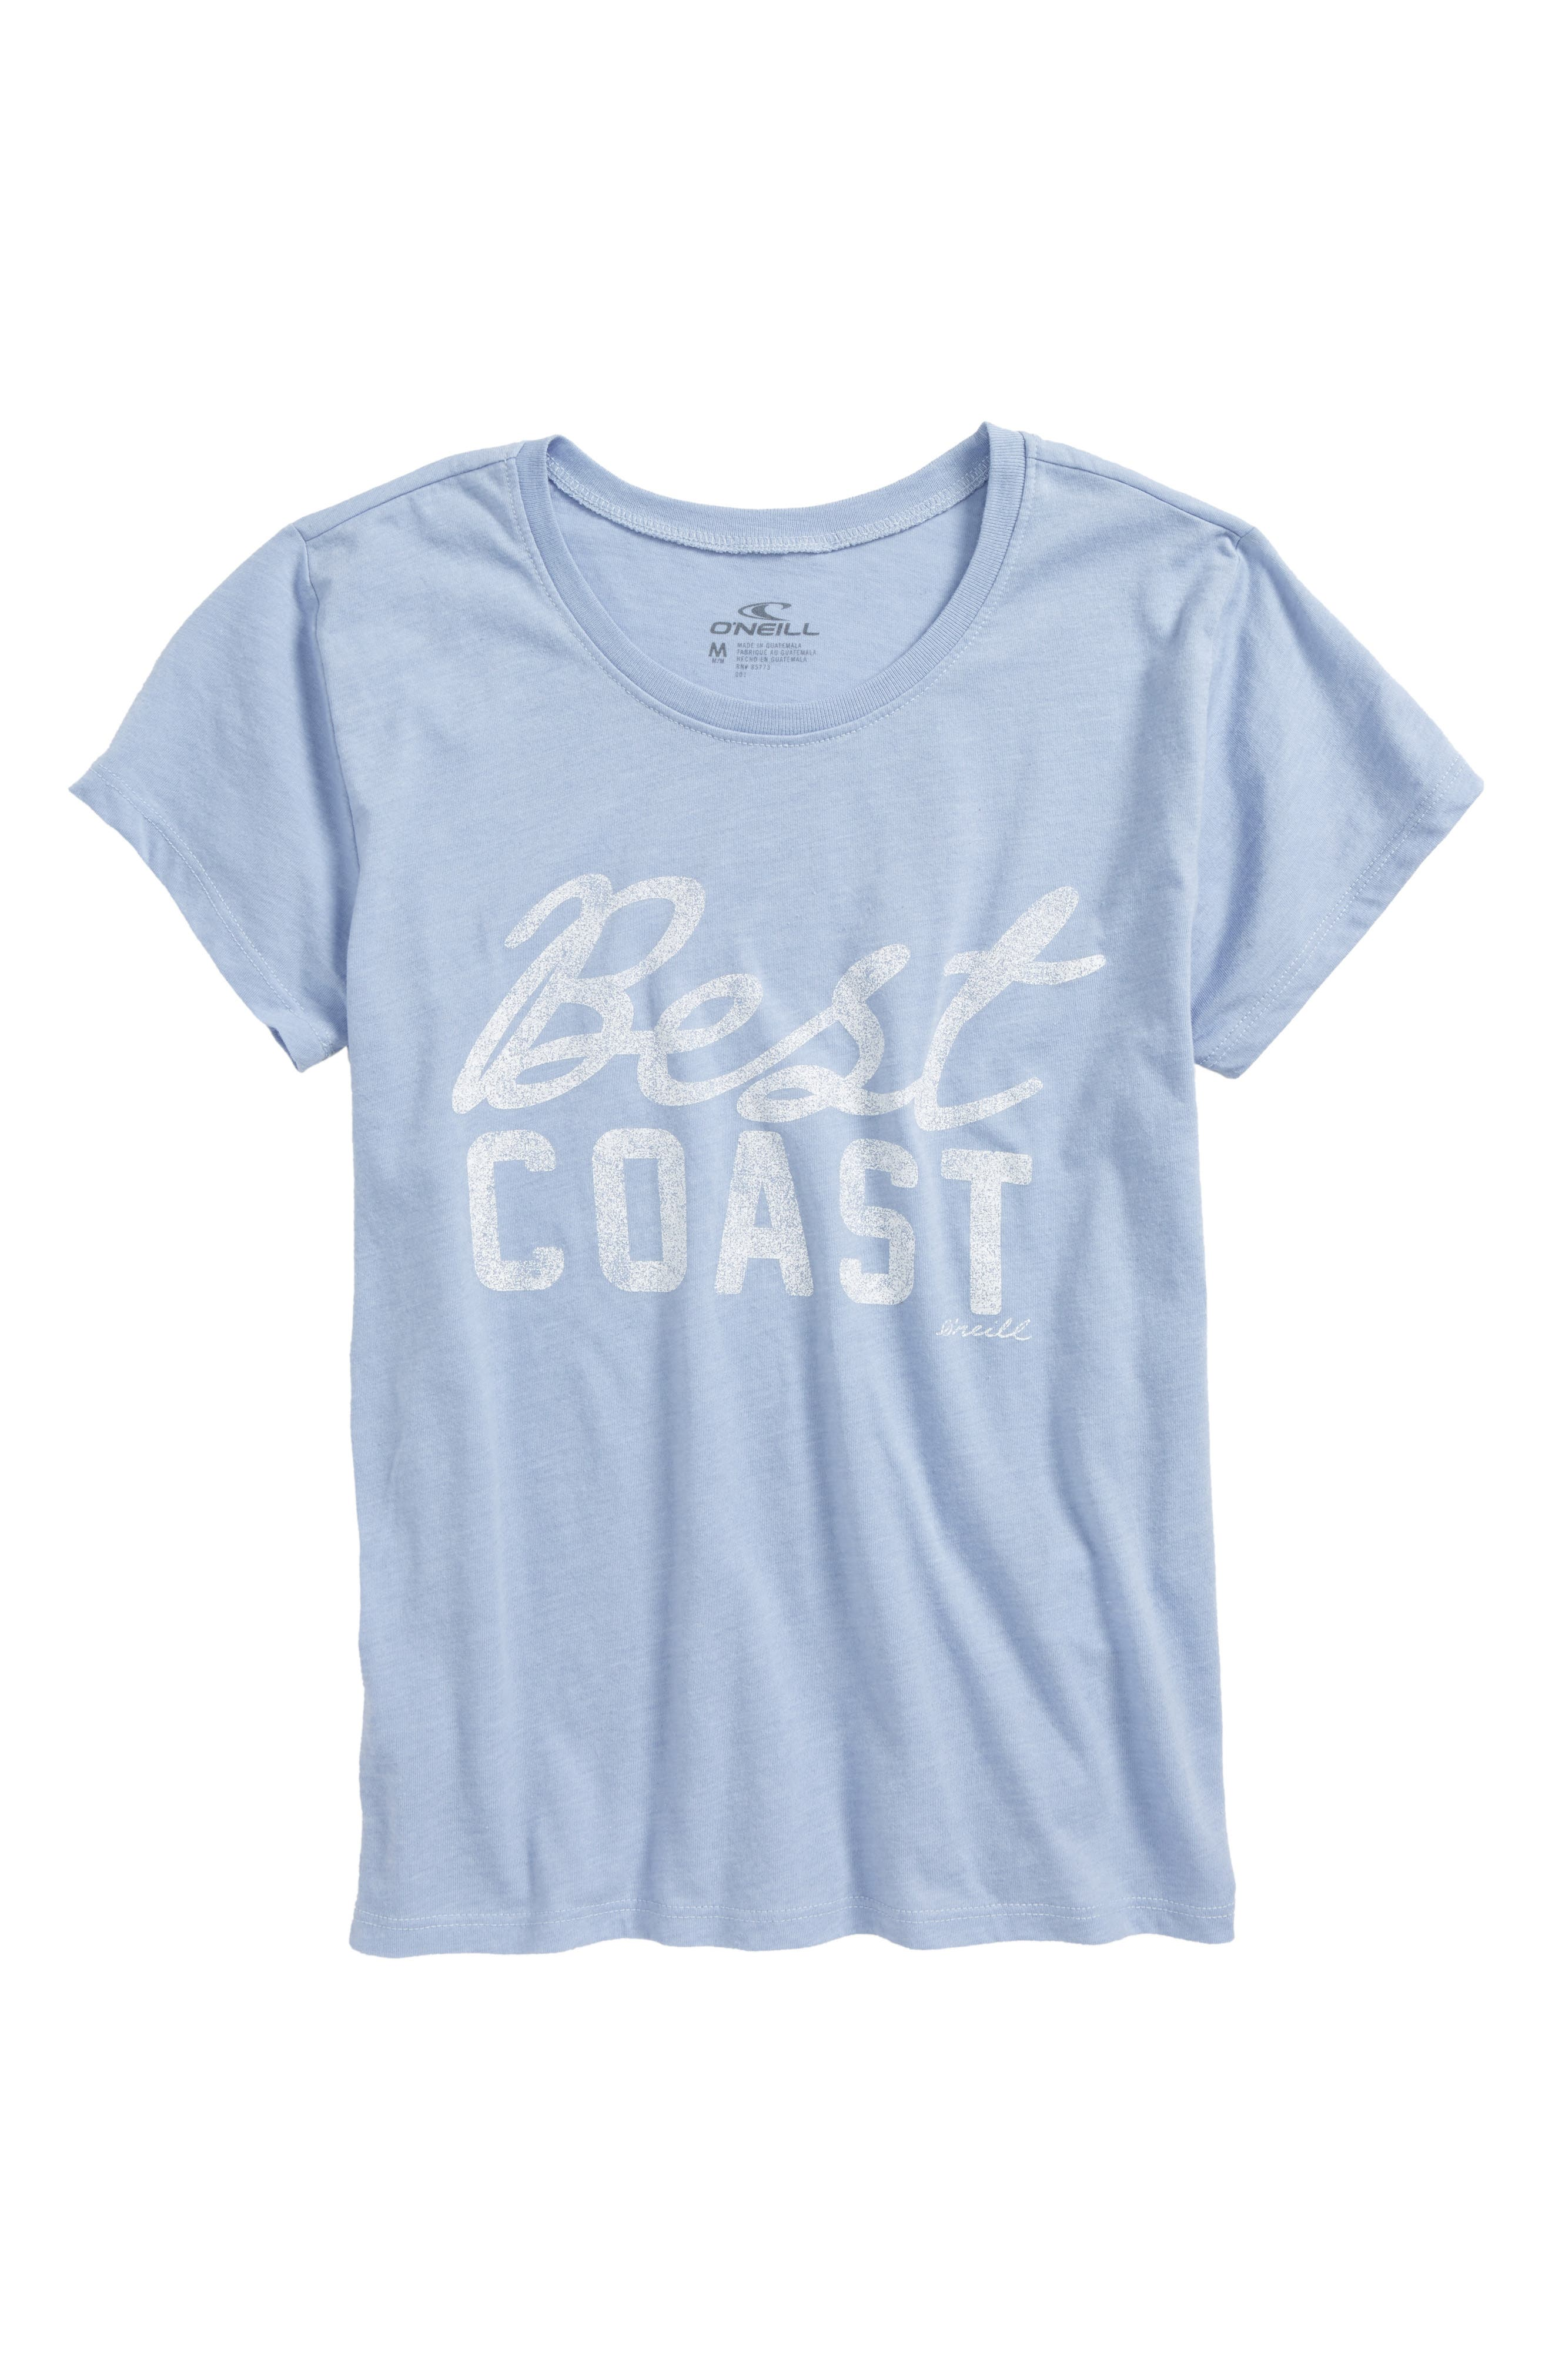 O'Neill The Best Coast Graphic Tee (Big Girls)